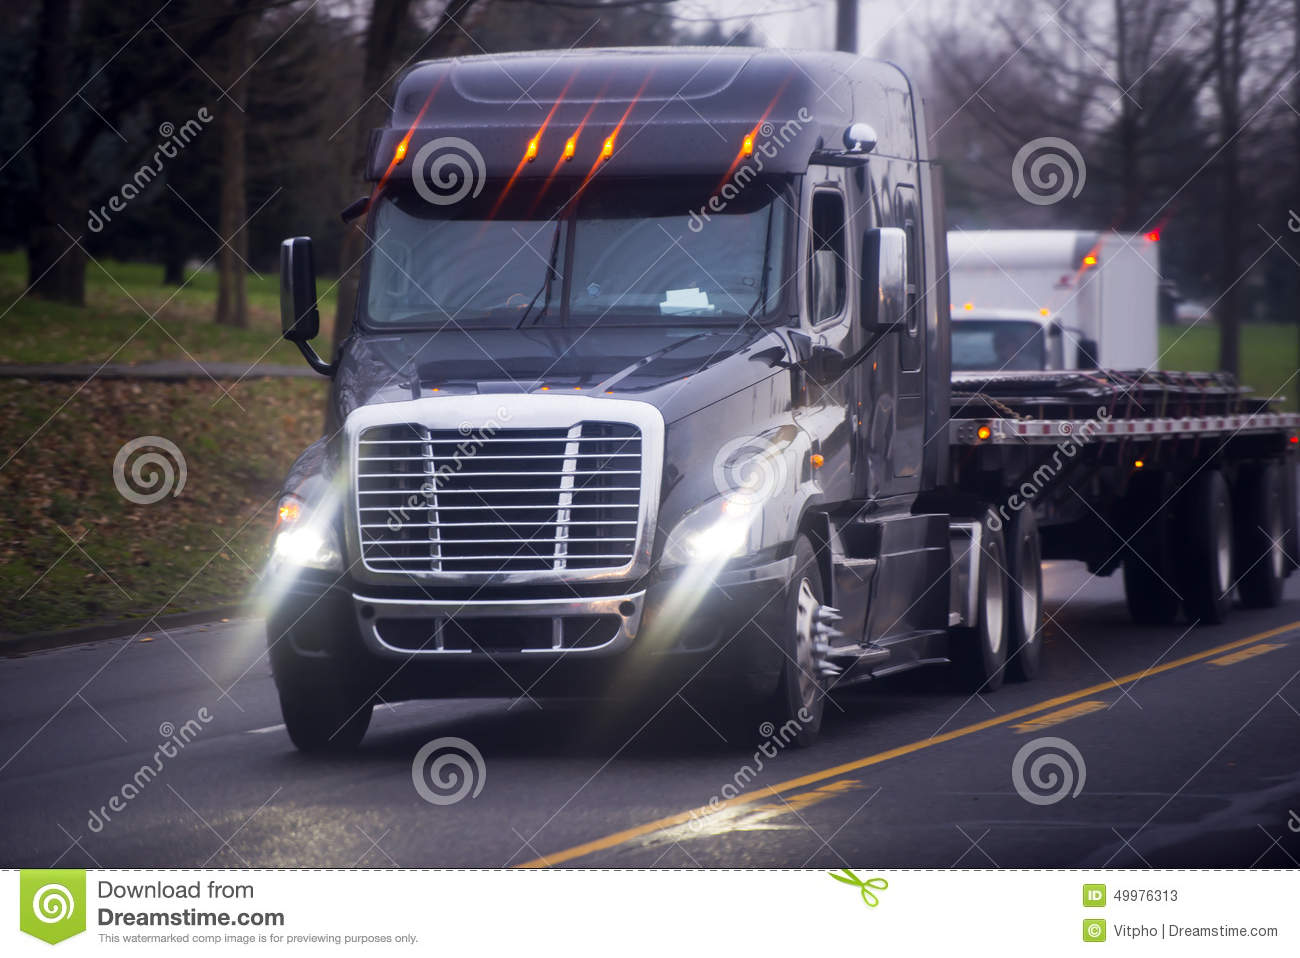 Picture Of Big Rig Headlights : Big modern semi truck with bright headlight and flat bed